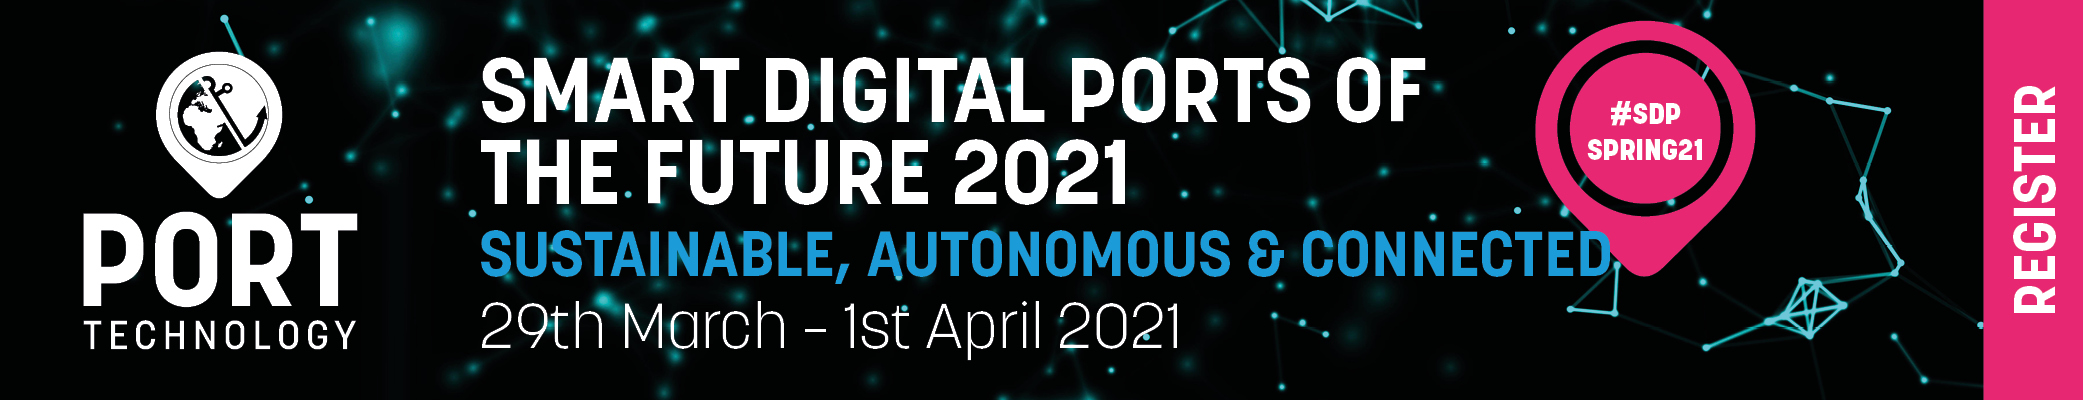 Smart Digital Ports of the Future 2021 - Spring Edition